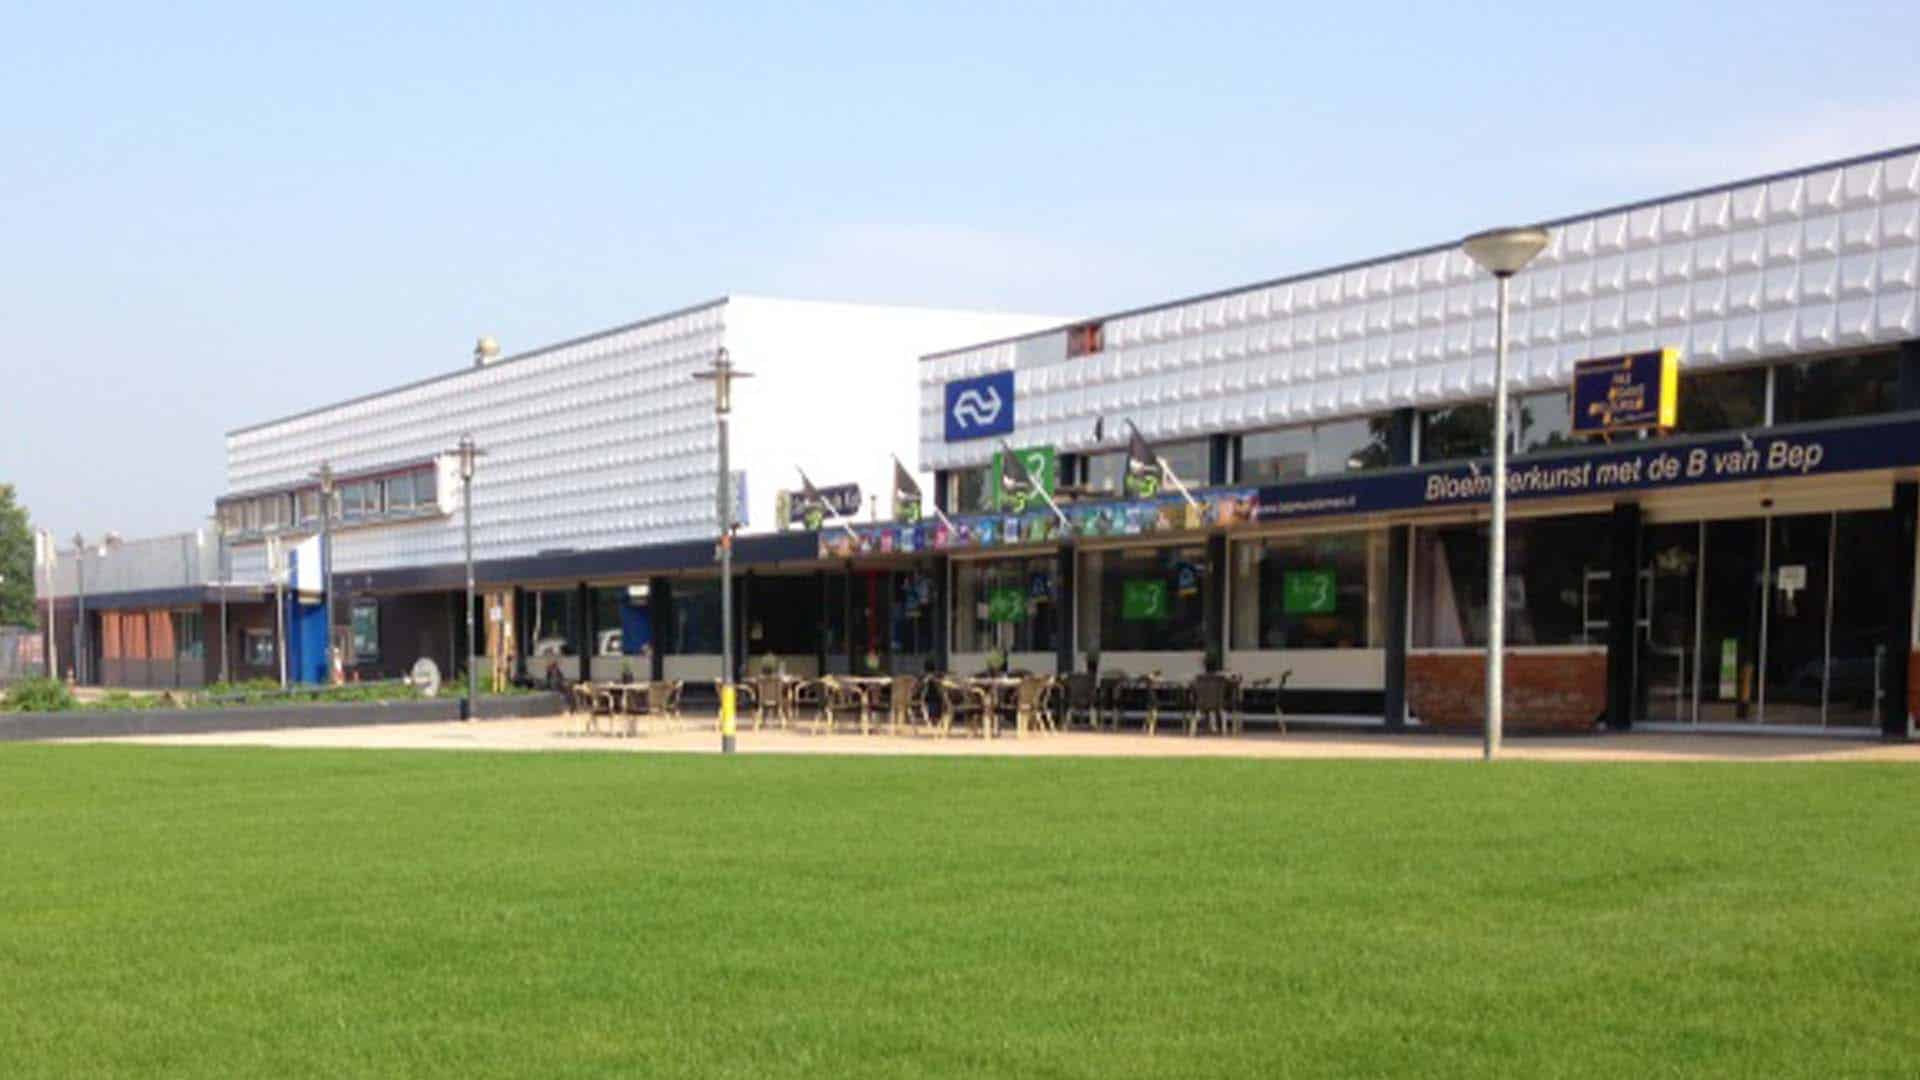 station Steenwijk